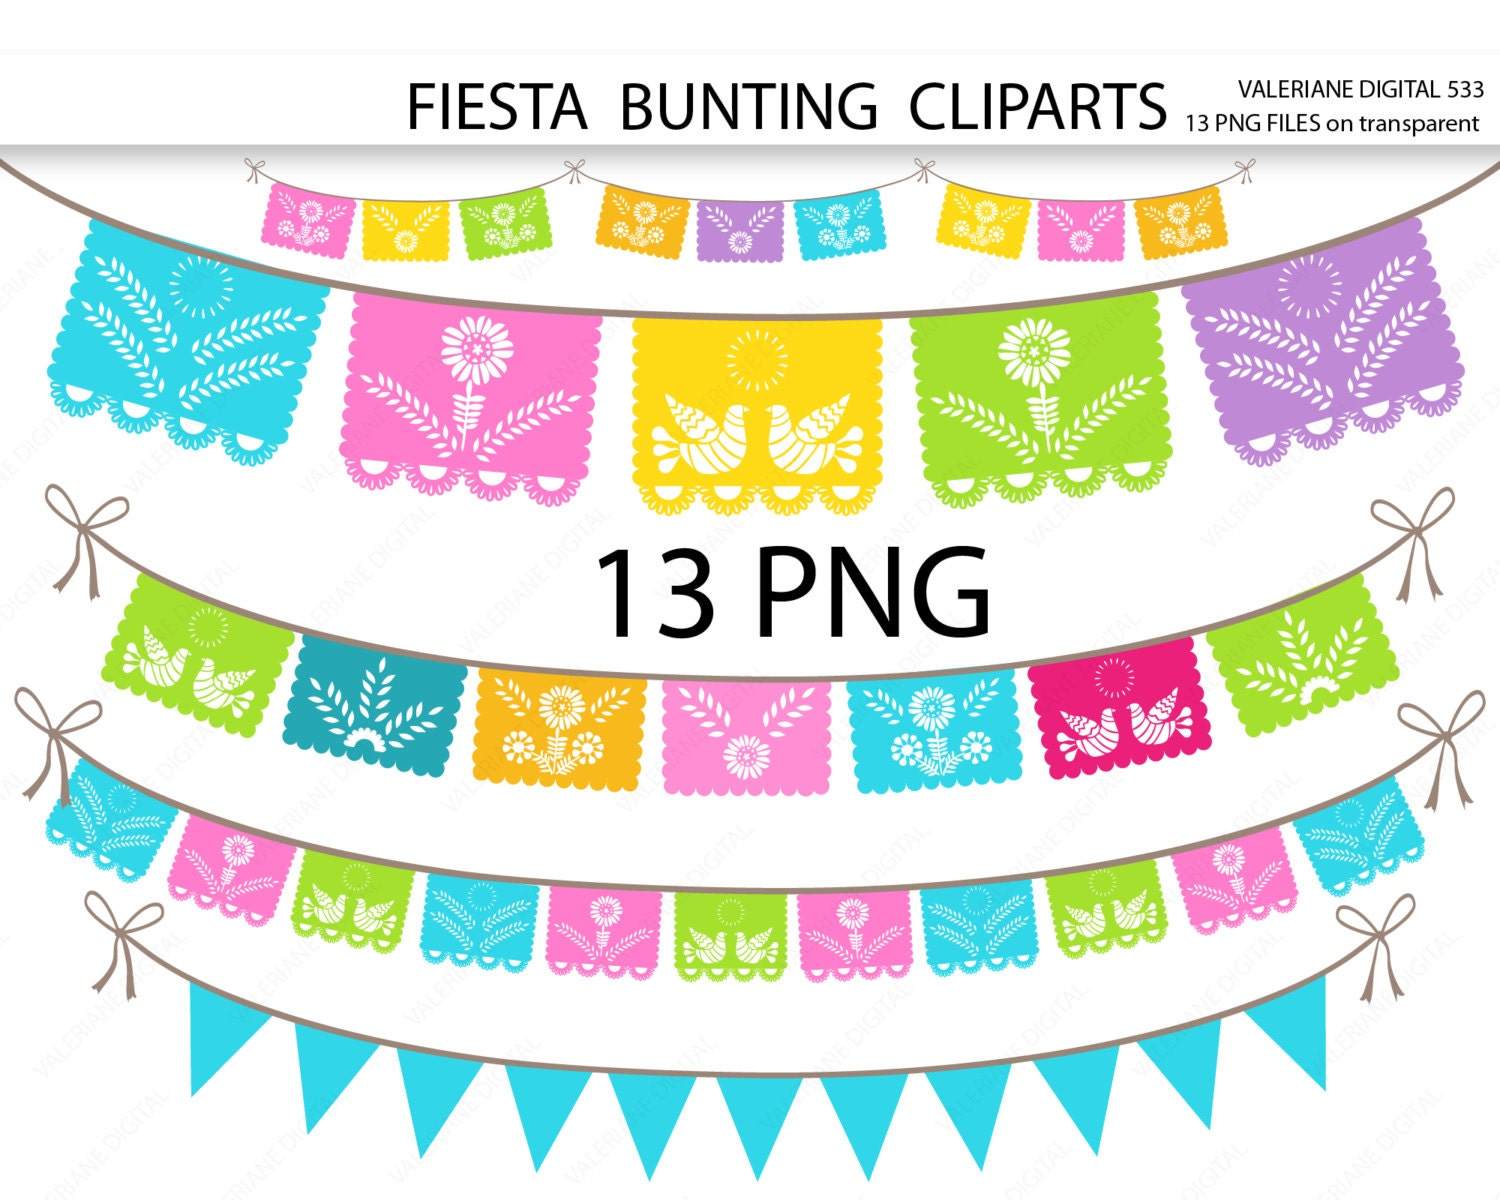 Fiesta digital bunting clipart mexican clip art clipart for zoom stopboris Images